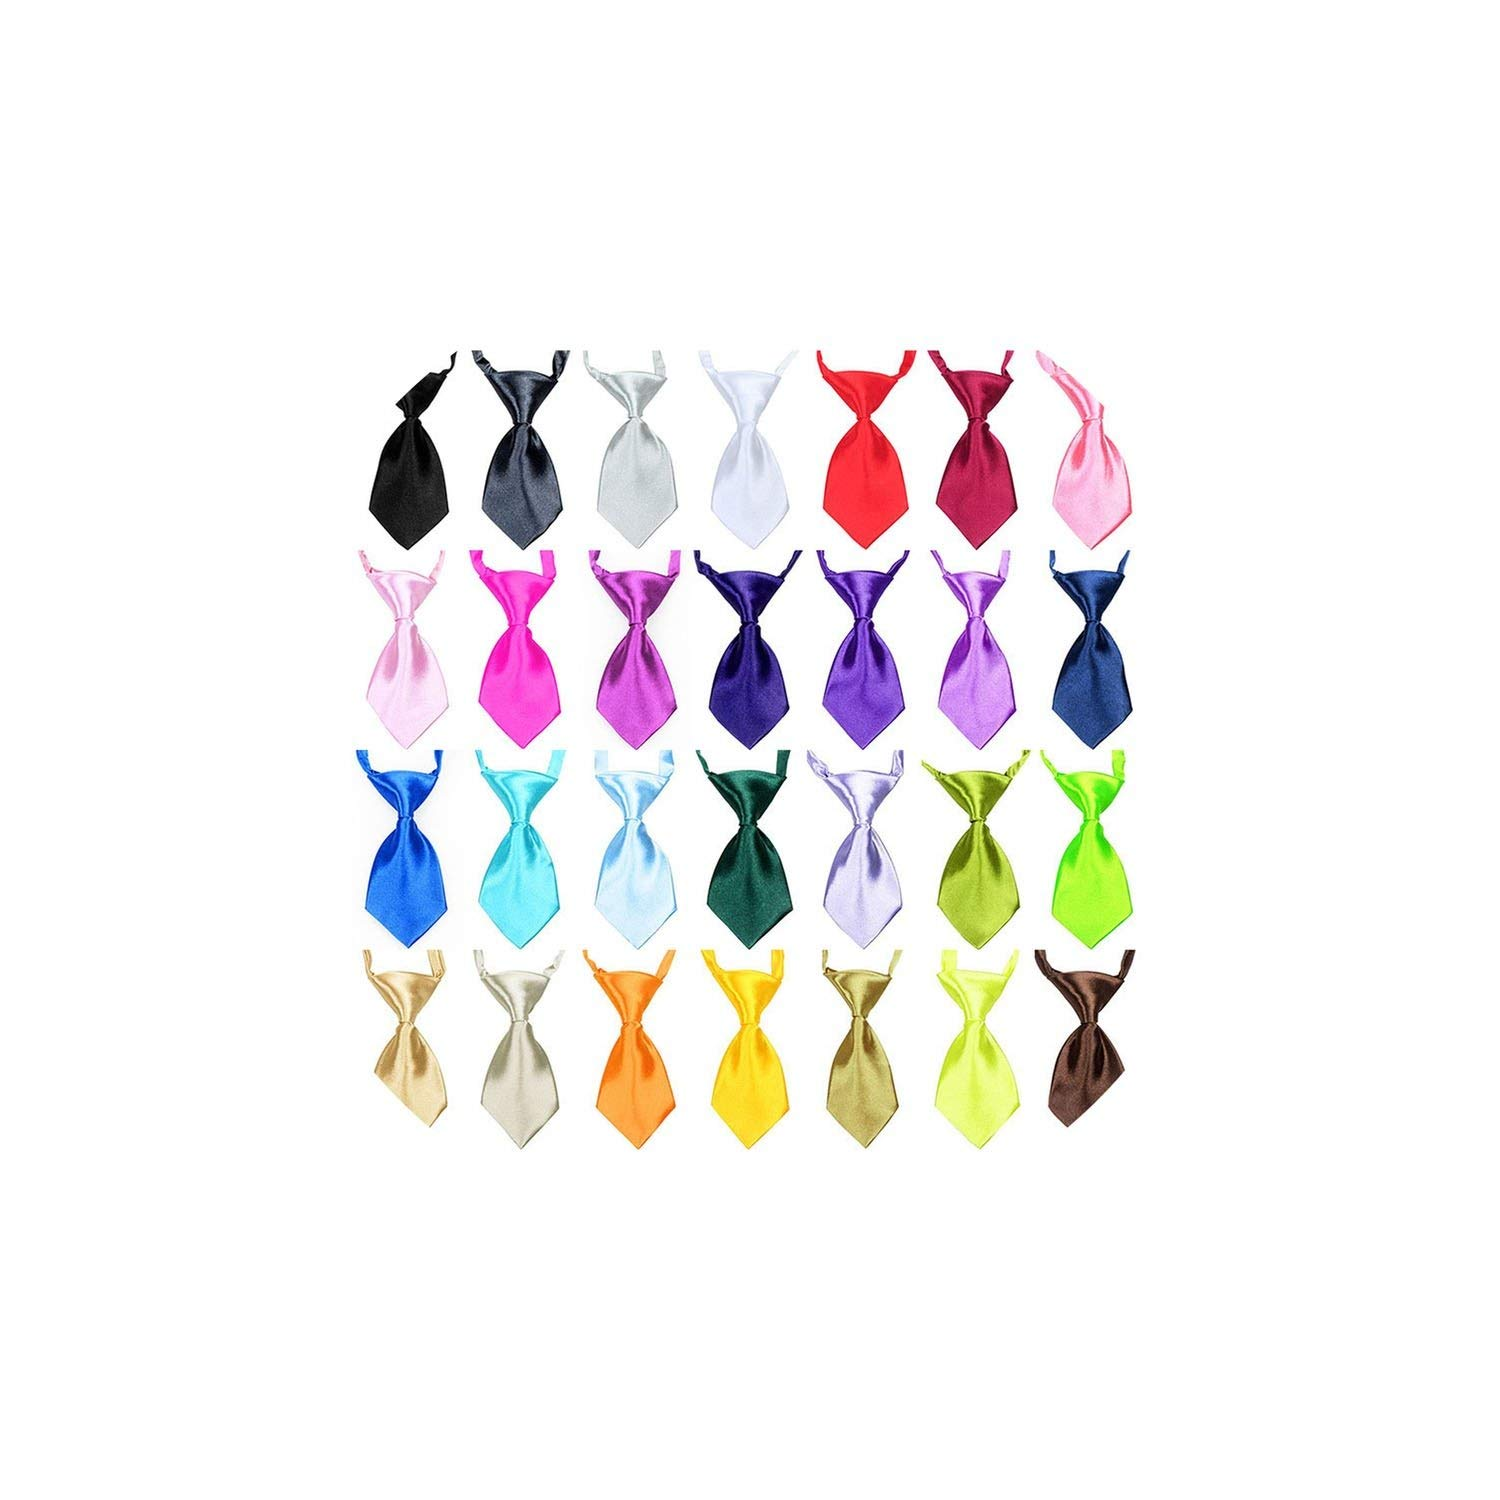 Casual-Life 50/100 pcs/lot Mix Color Pet Cat Dog Bow Tie Puppy Grooming Products Adjustable Dog Accessories Bows for Small Dogs Pet Supplies,Mix Solid Colors,100 pcs